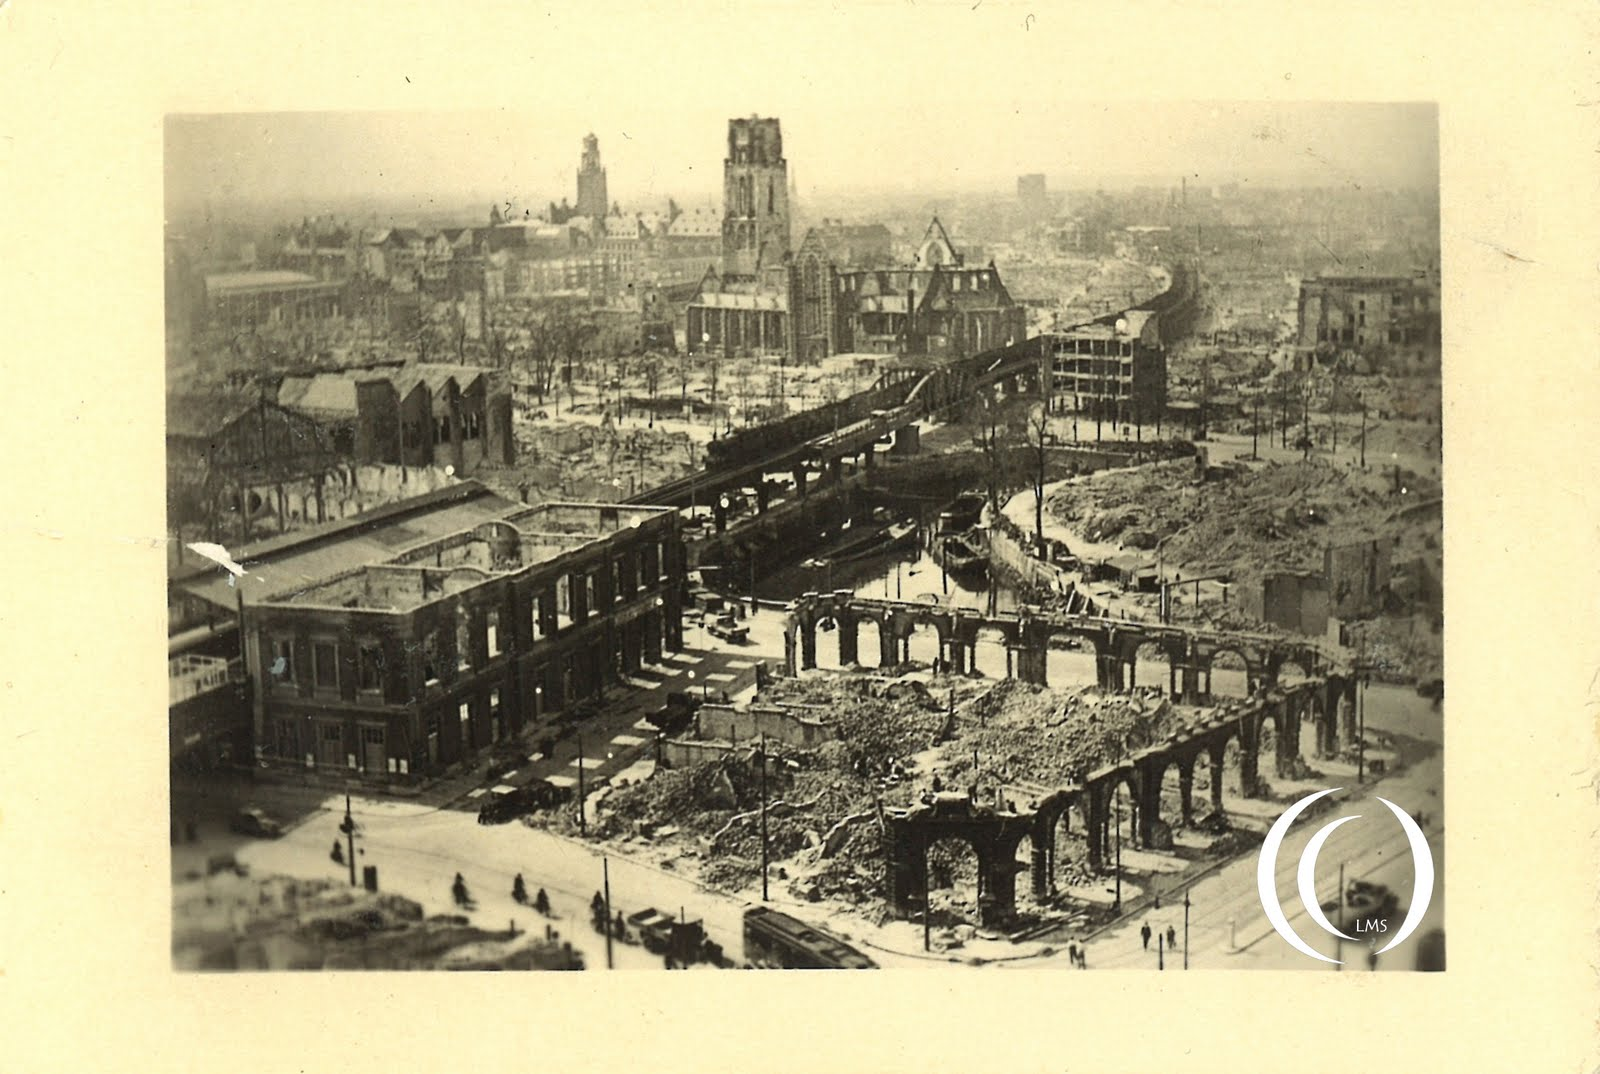 A view from the White House of the destroyed city centre of Rotterdam